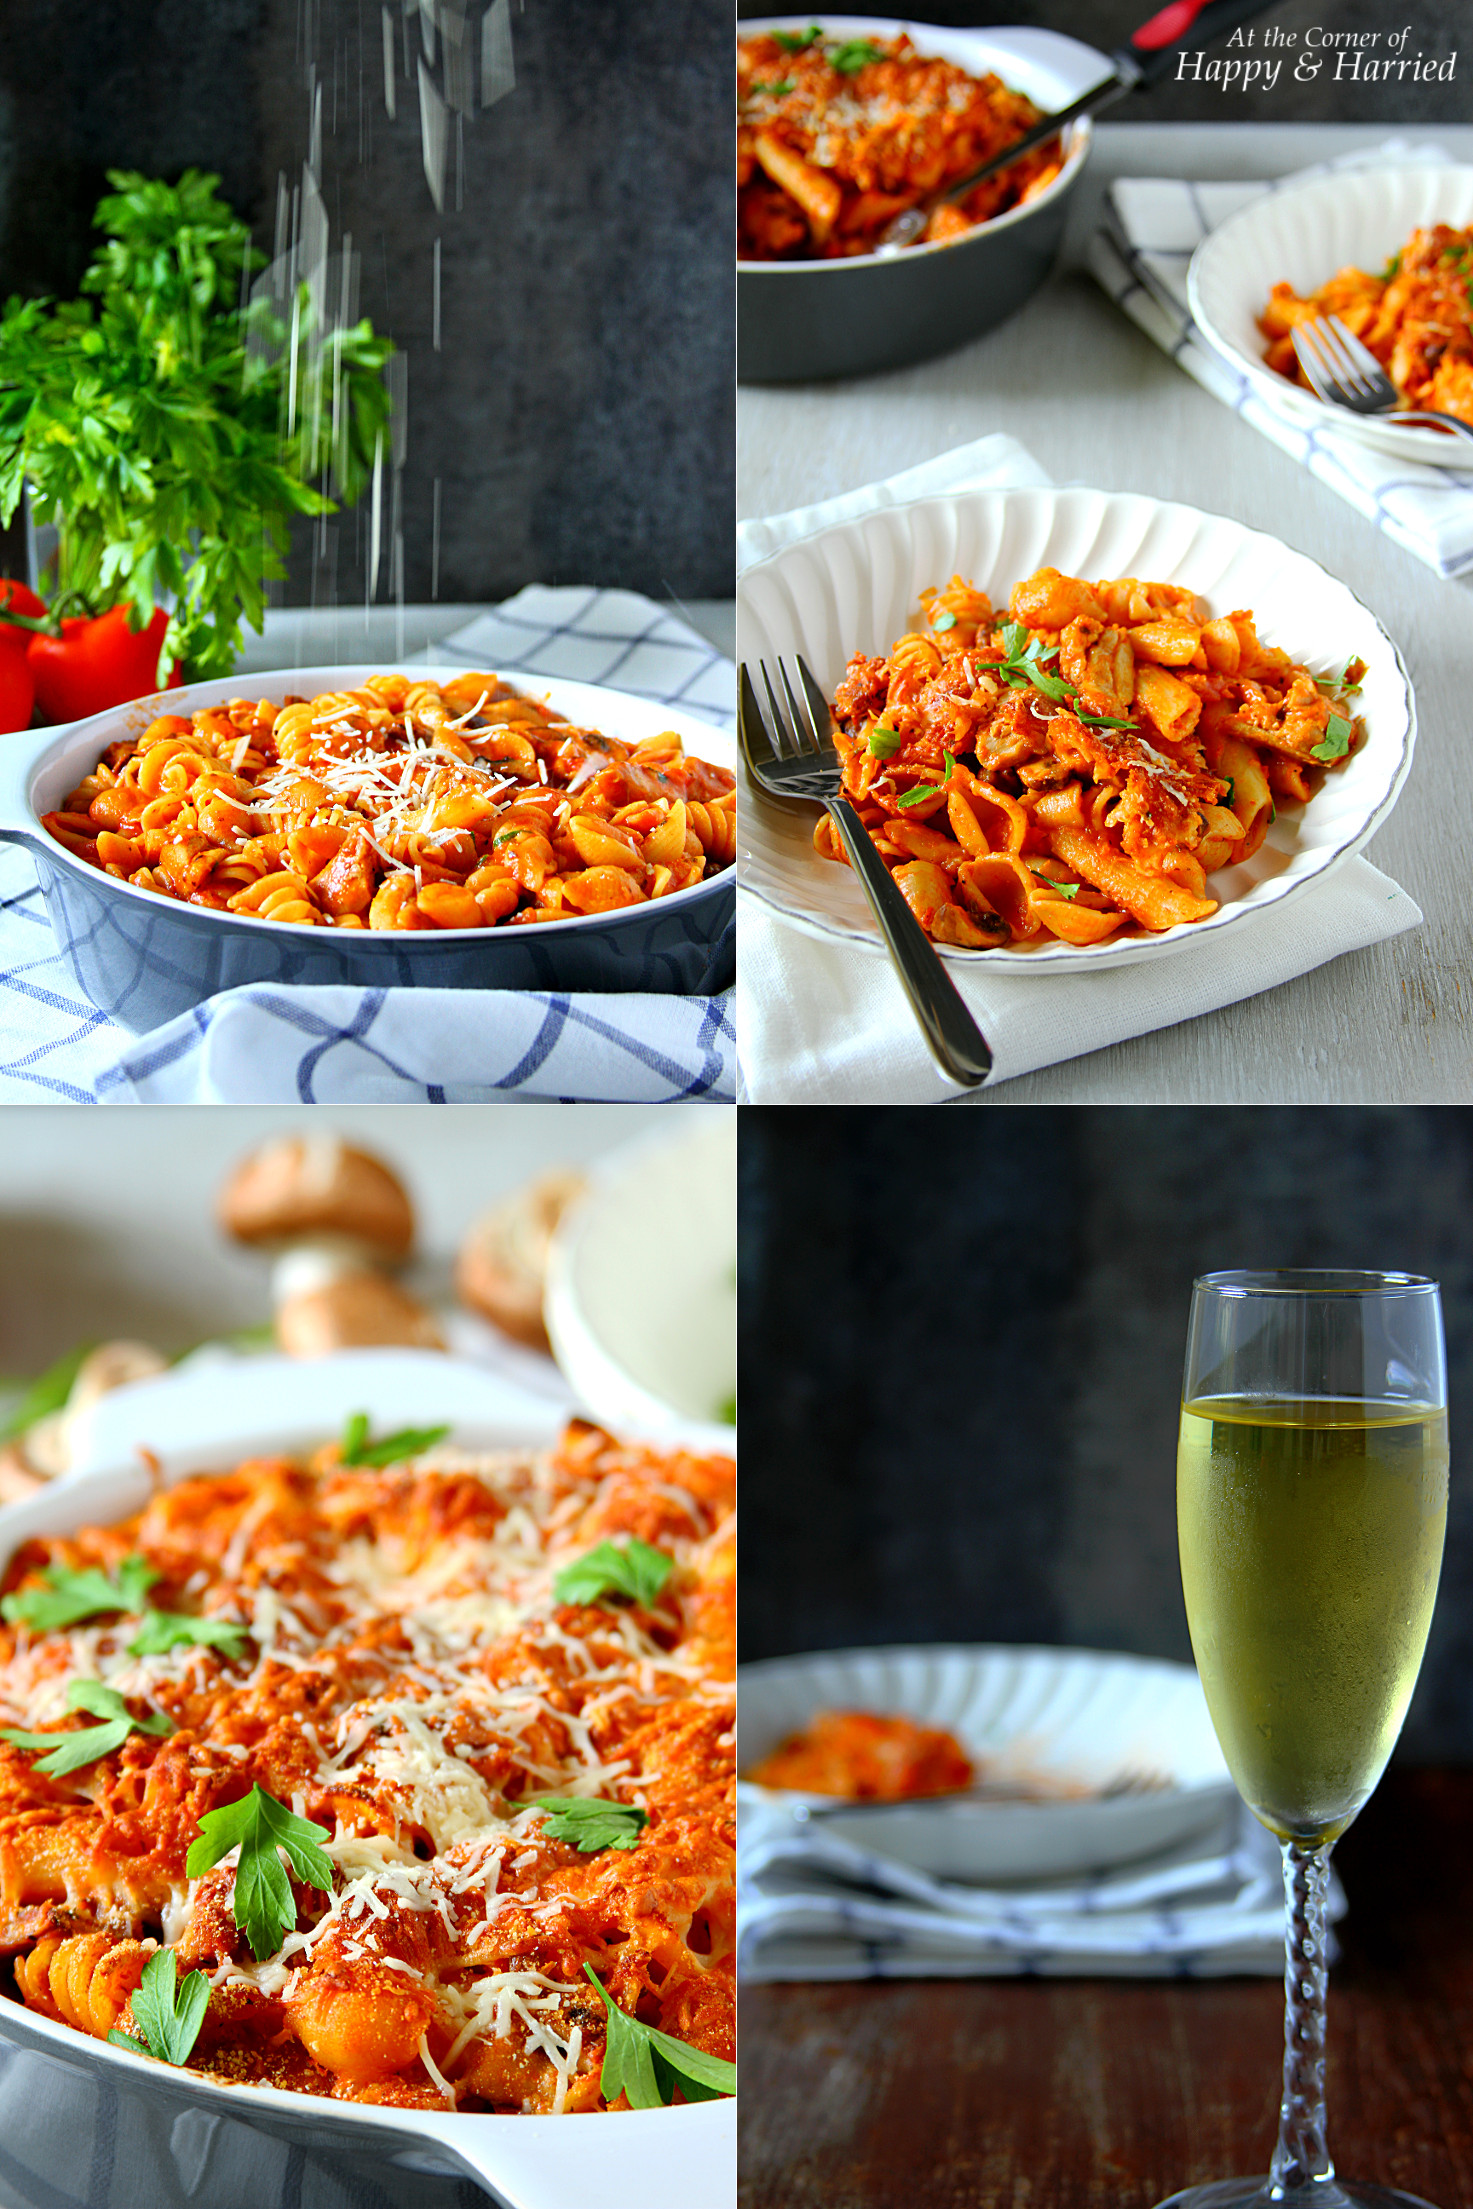 QUICK ITALIAN CHICKEN PASTA BAKE